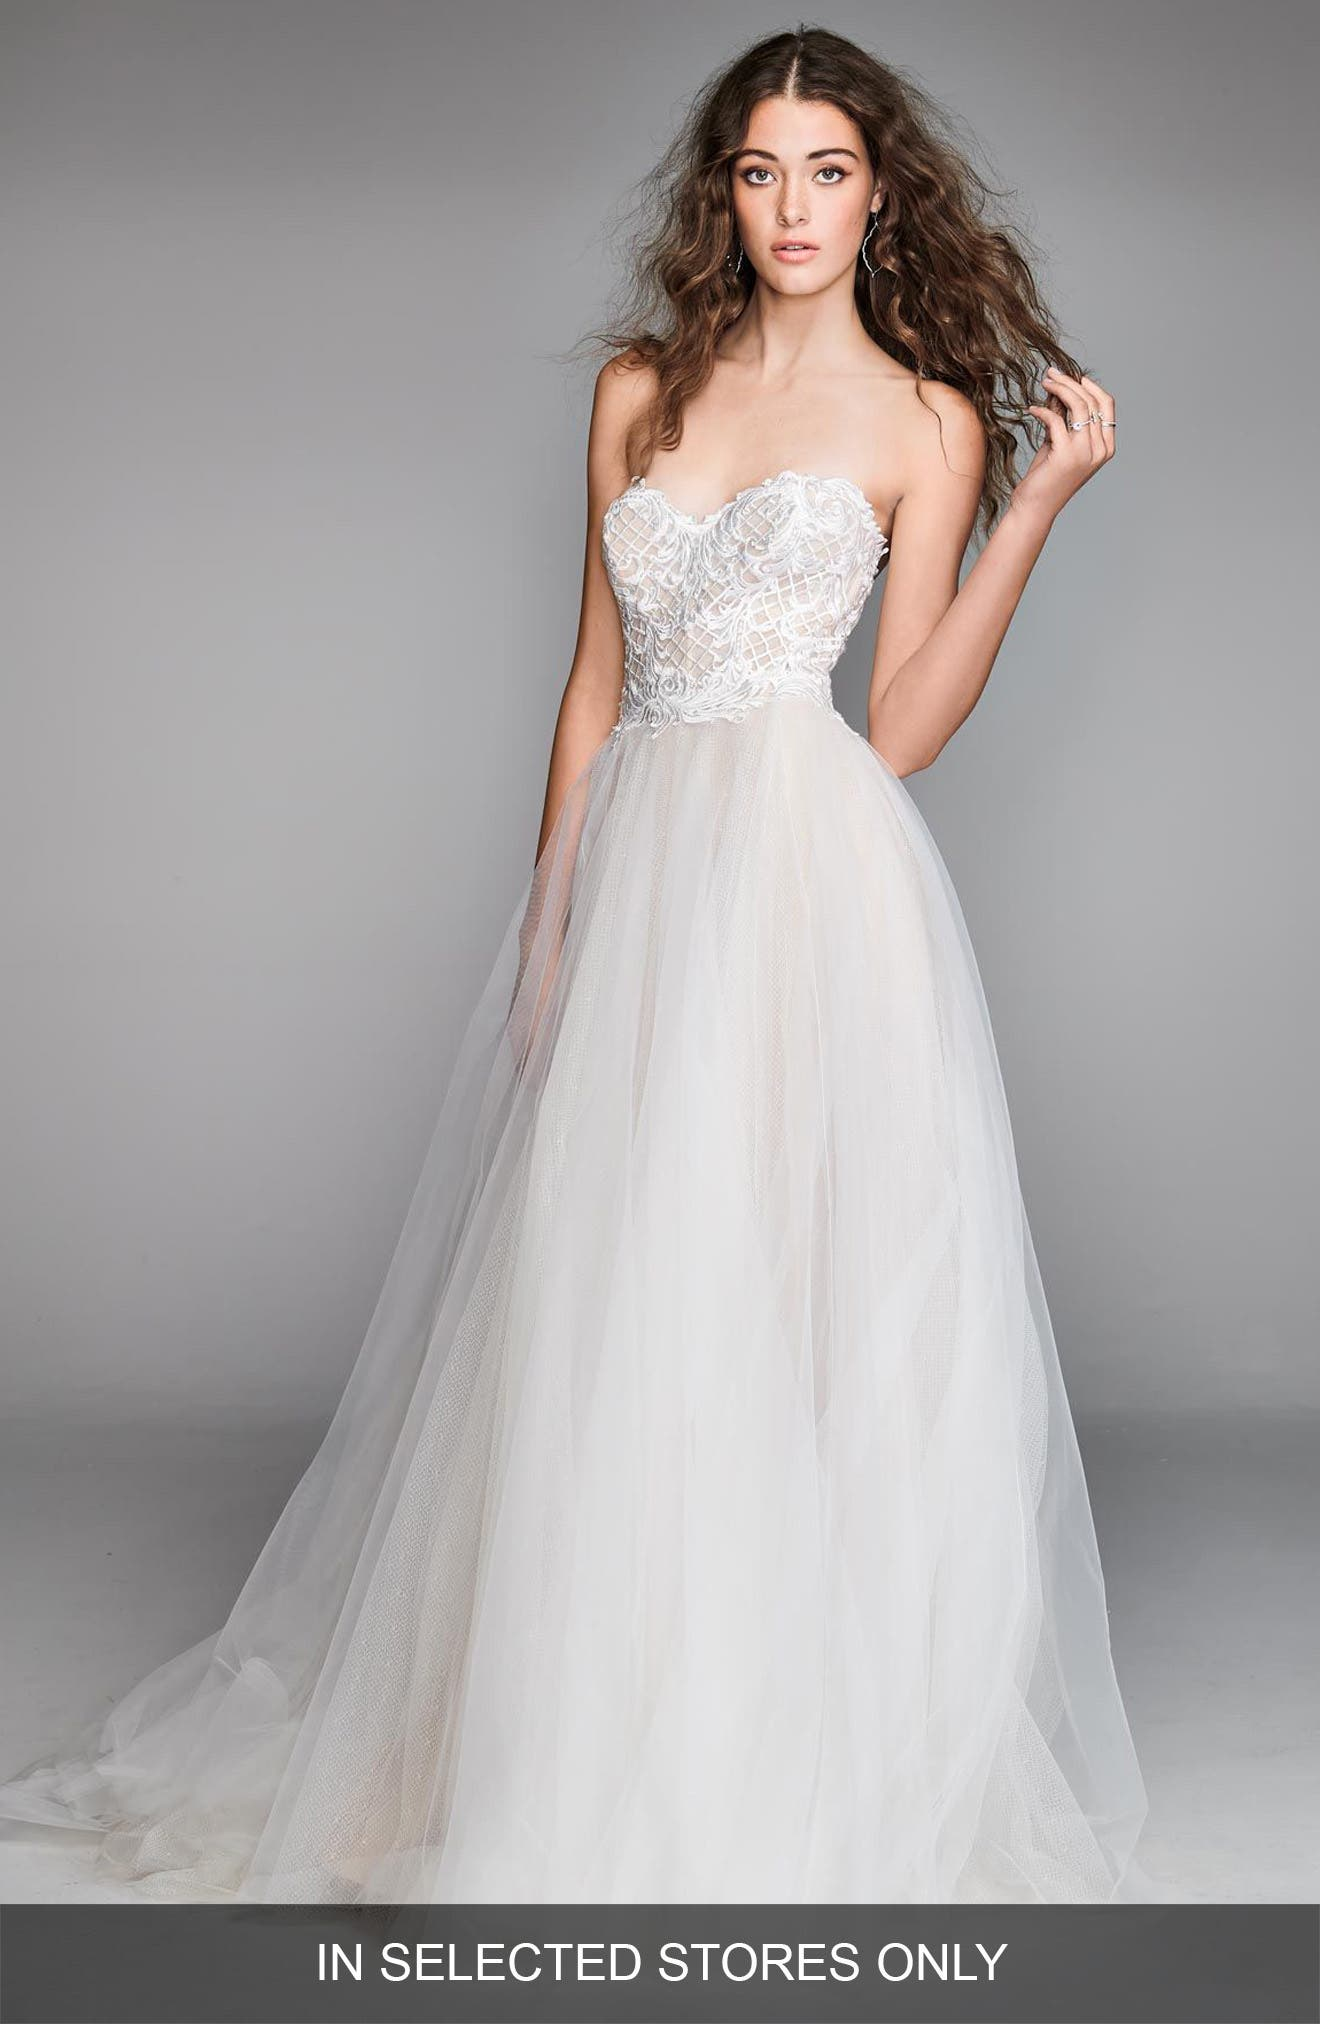 Mandara Lace & Tulle Strapless Ballgown,                         Main,                         color, IVORY/ BLUSH